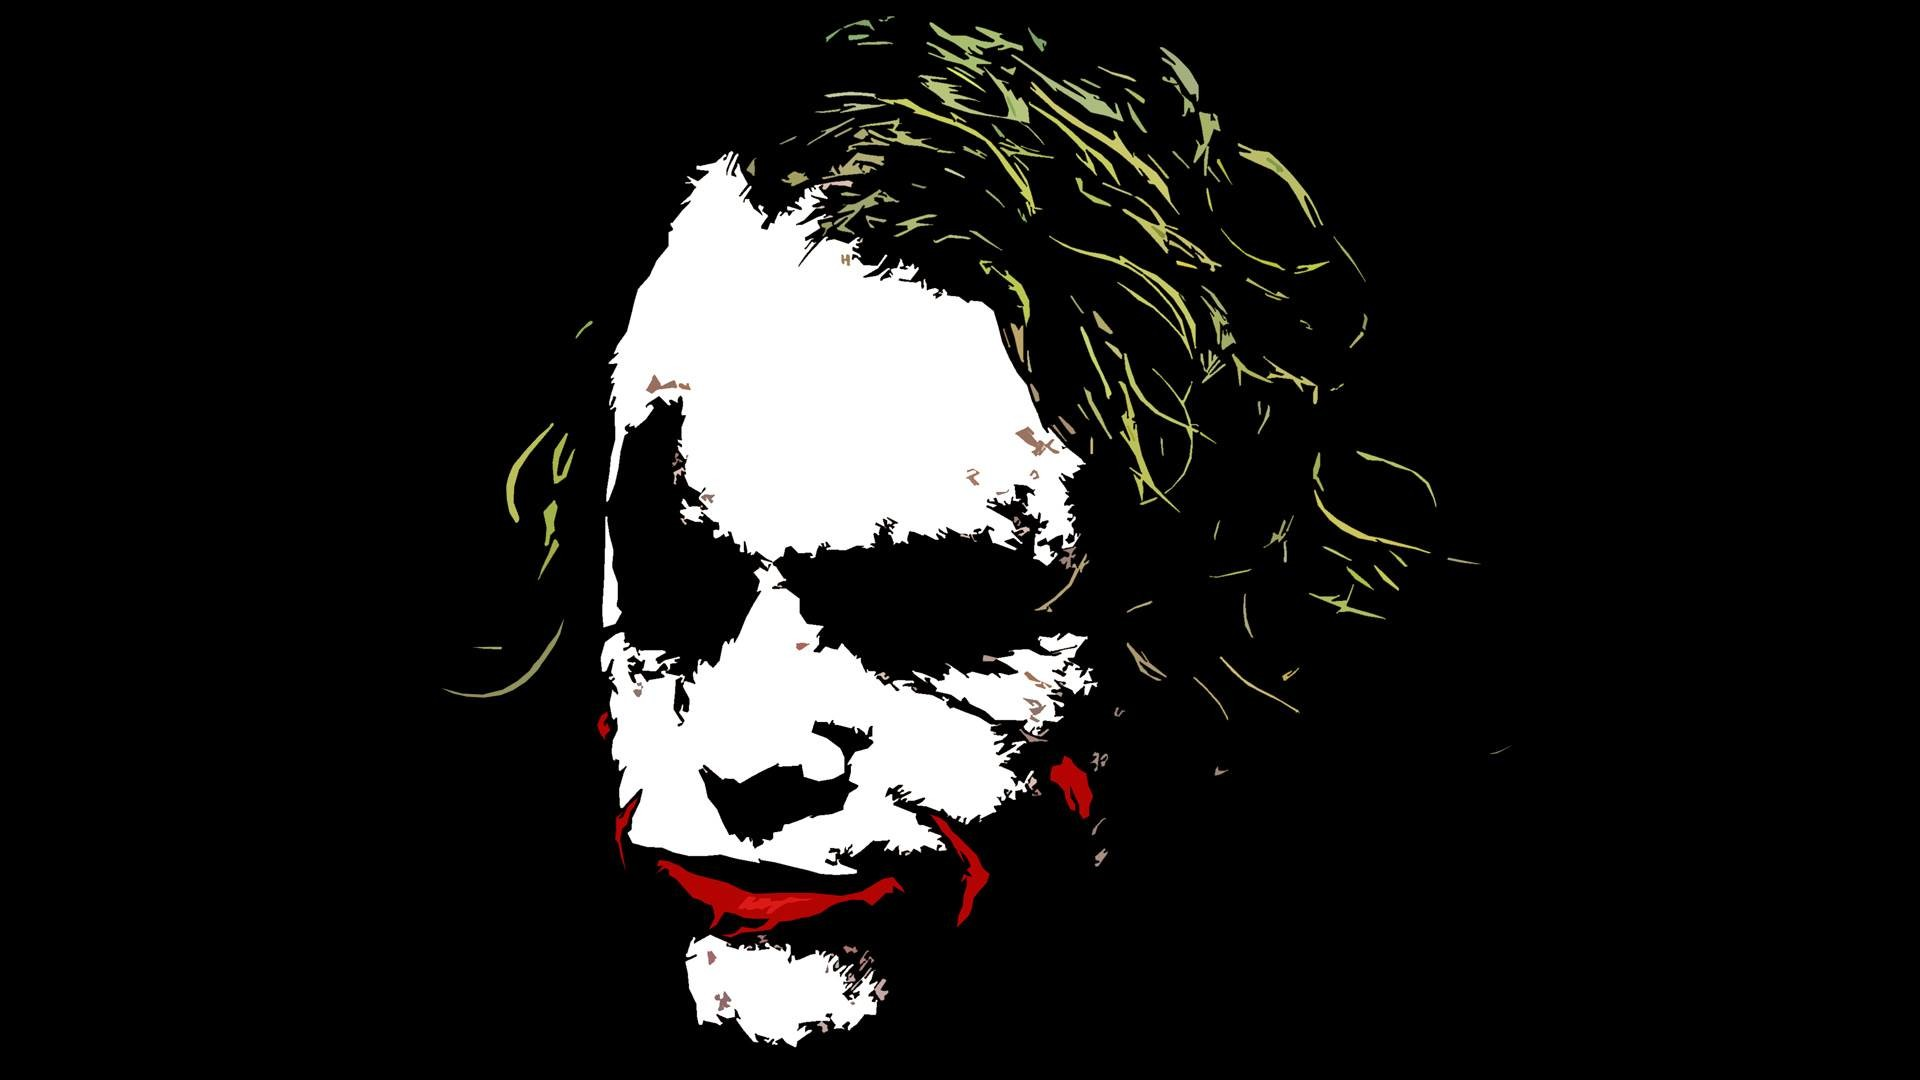 the joker hd wallpaper (67+ images)